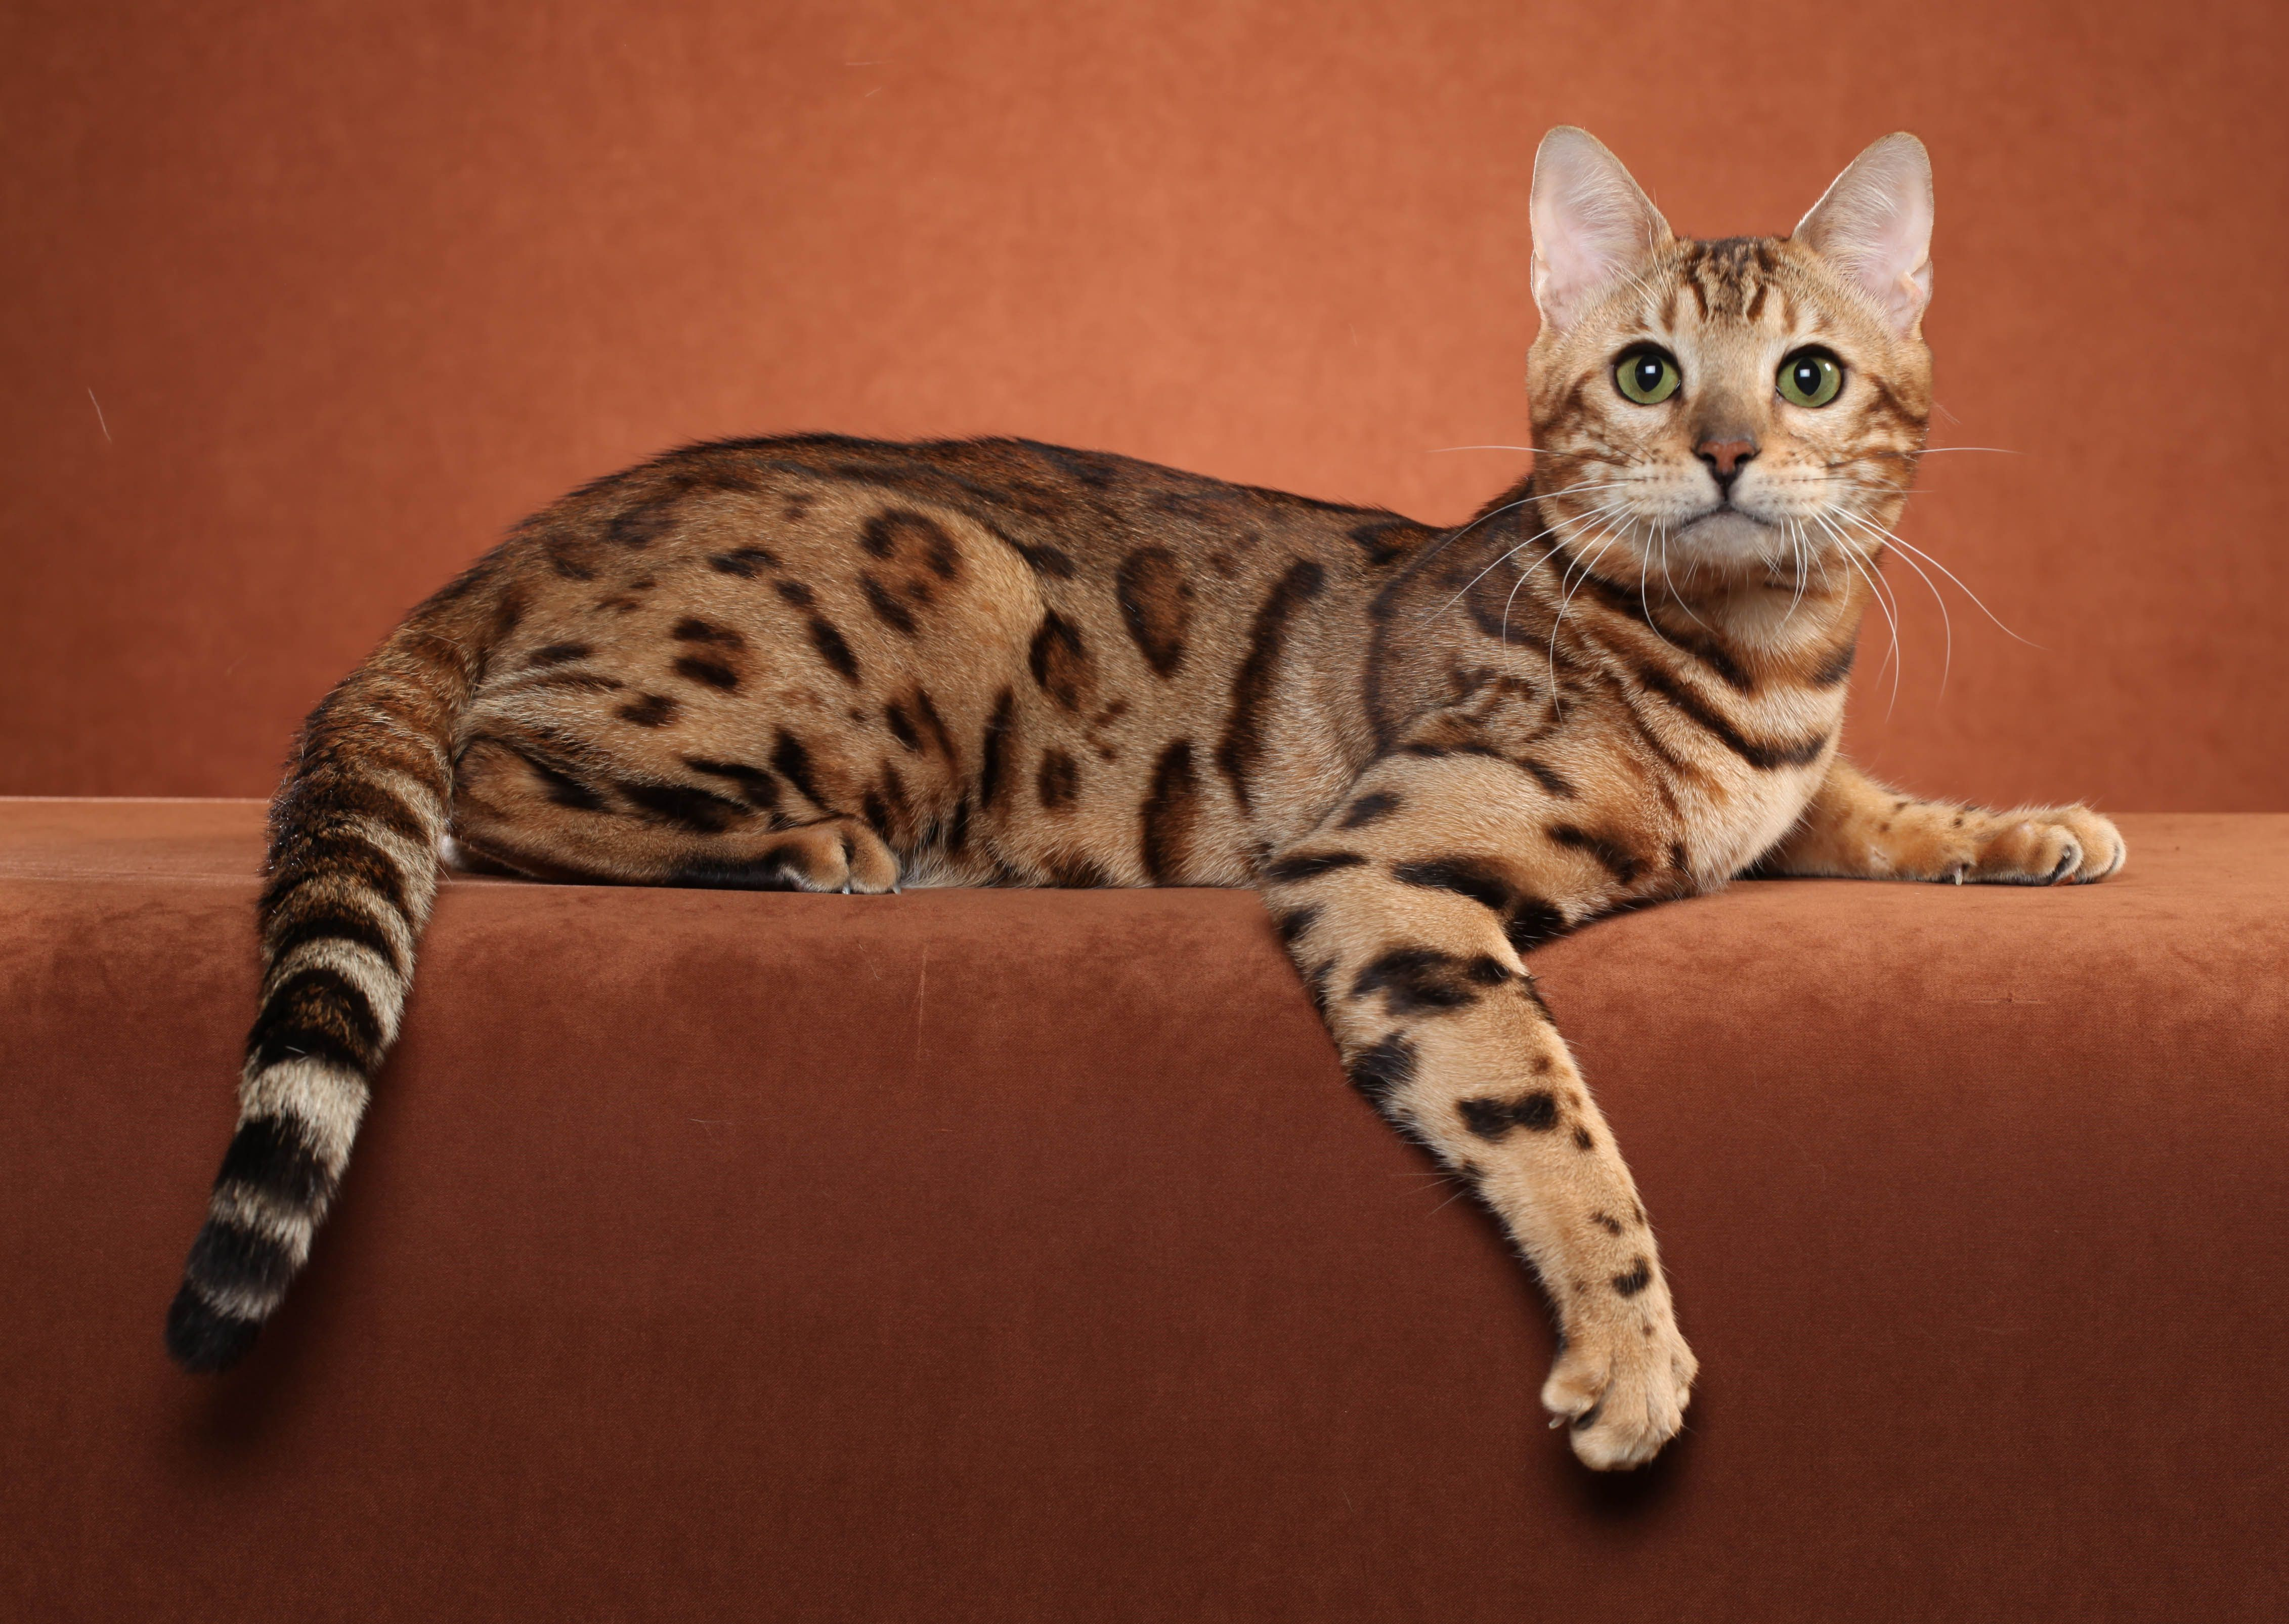 Bengal Kittens For Sale Bengal Cat For Sale Ocicat Bengal Kitten